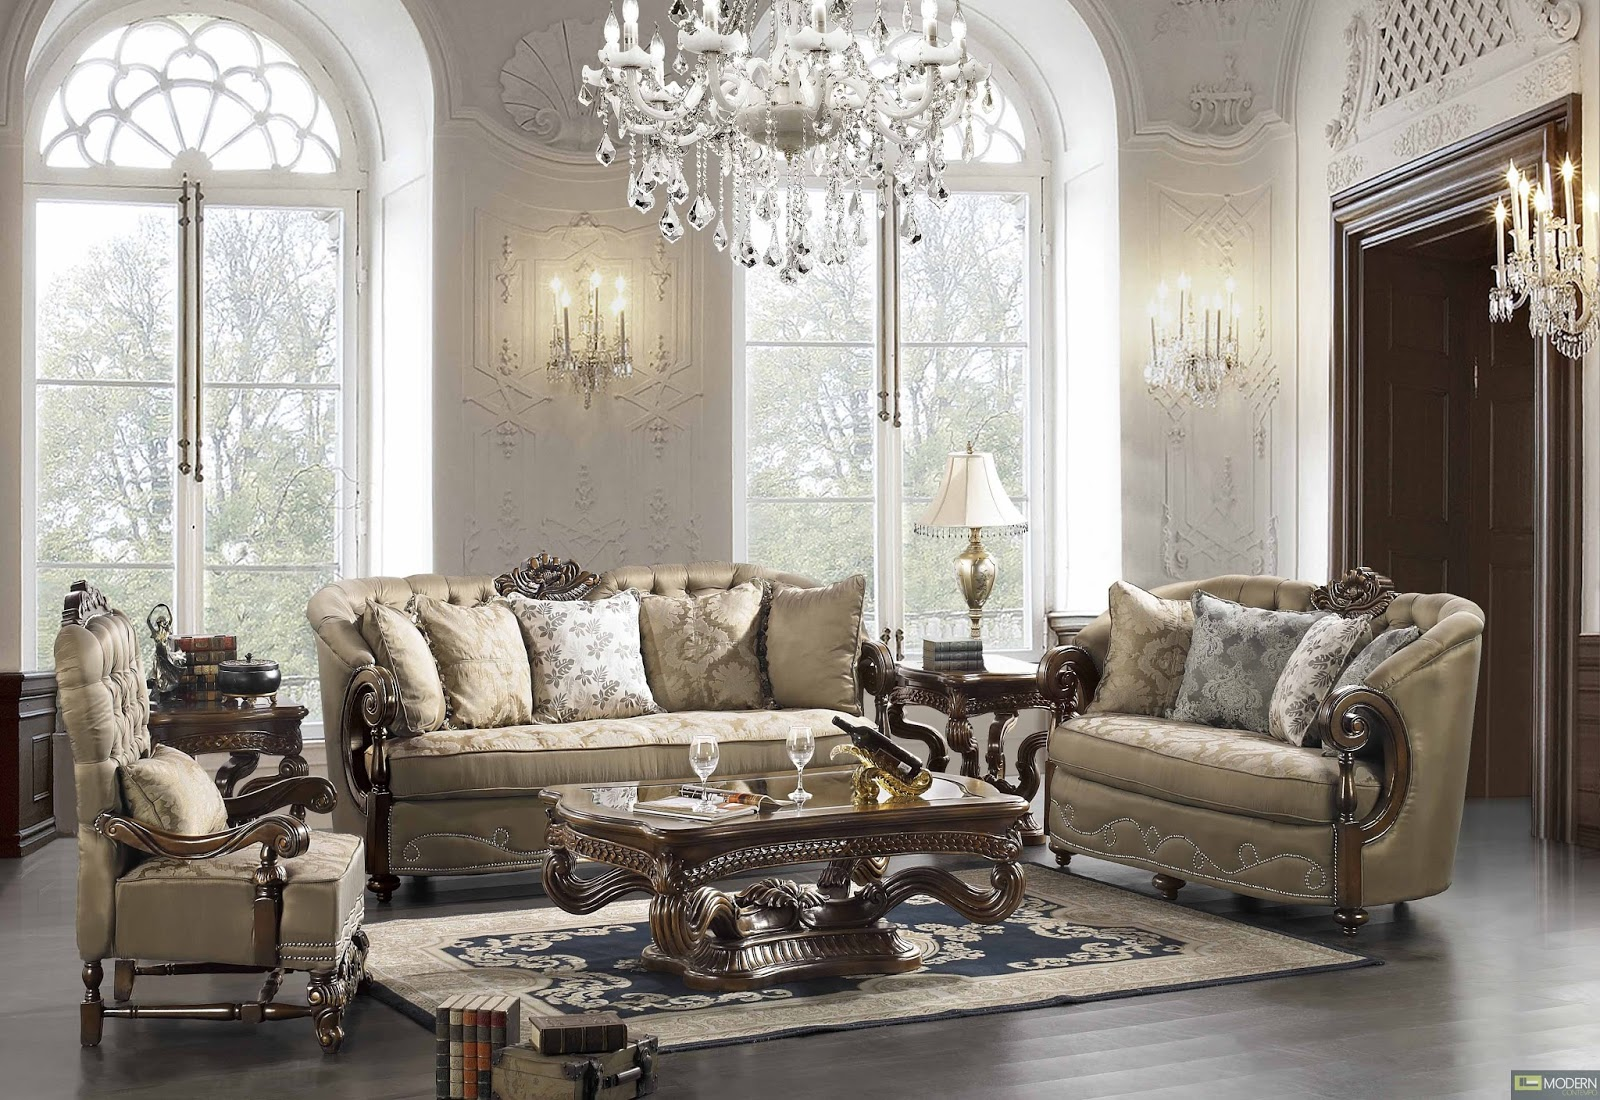 Best furniture ideas for home traditional classic for Classic furniture